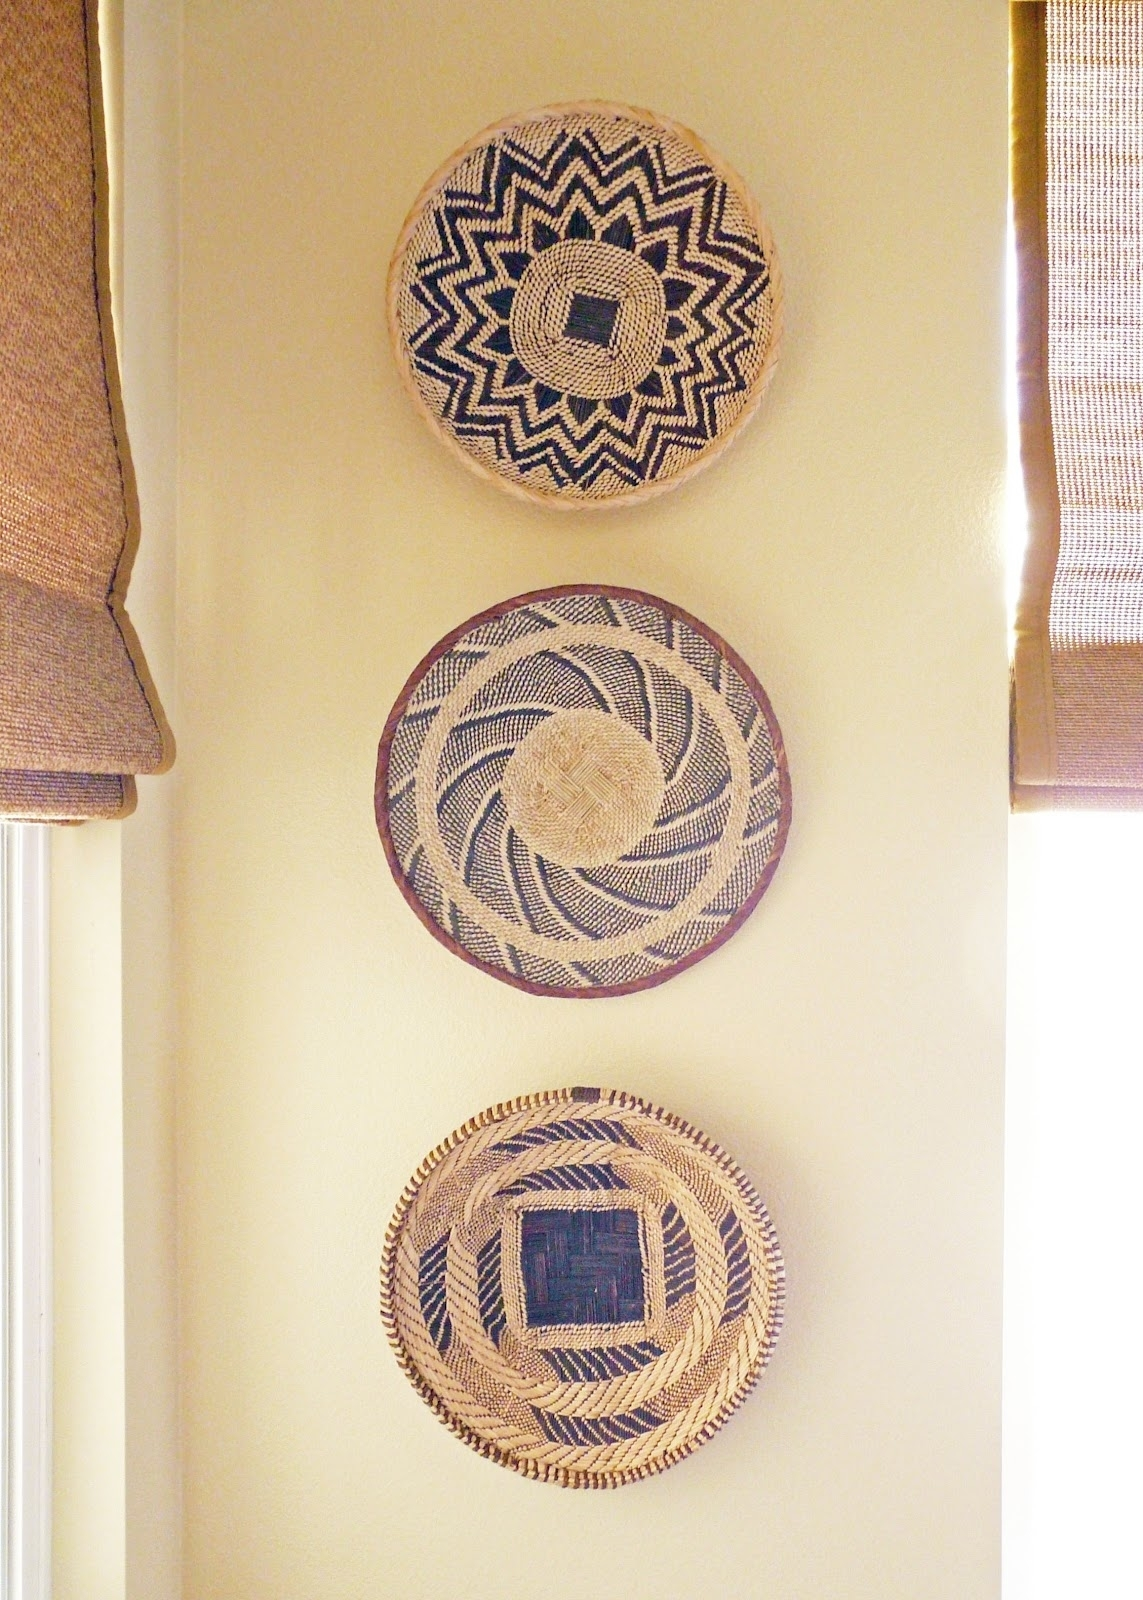 Wall Decor: Good Look Baskets As Wall Decor Woven Wall Baskets With Regard To 2018 African Wall Accents (Gallery 8 of 15)